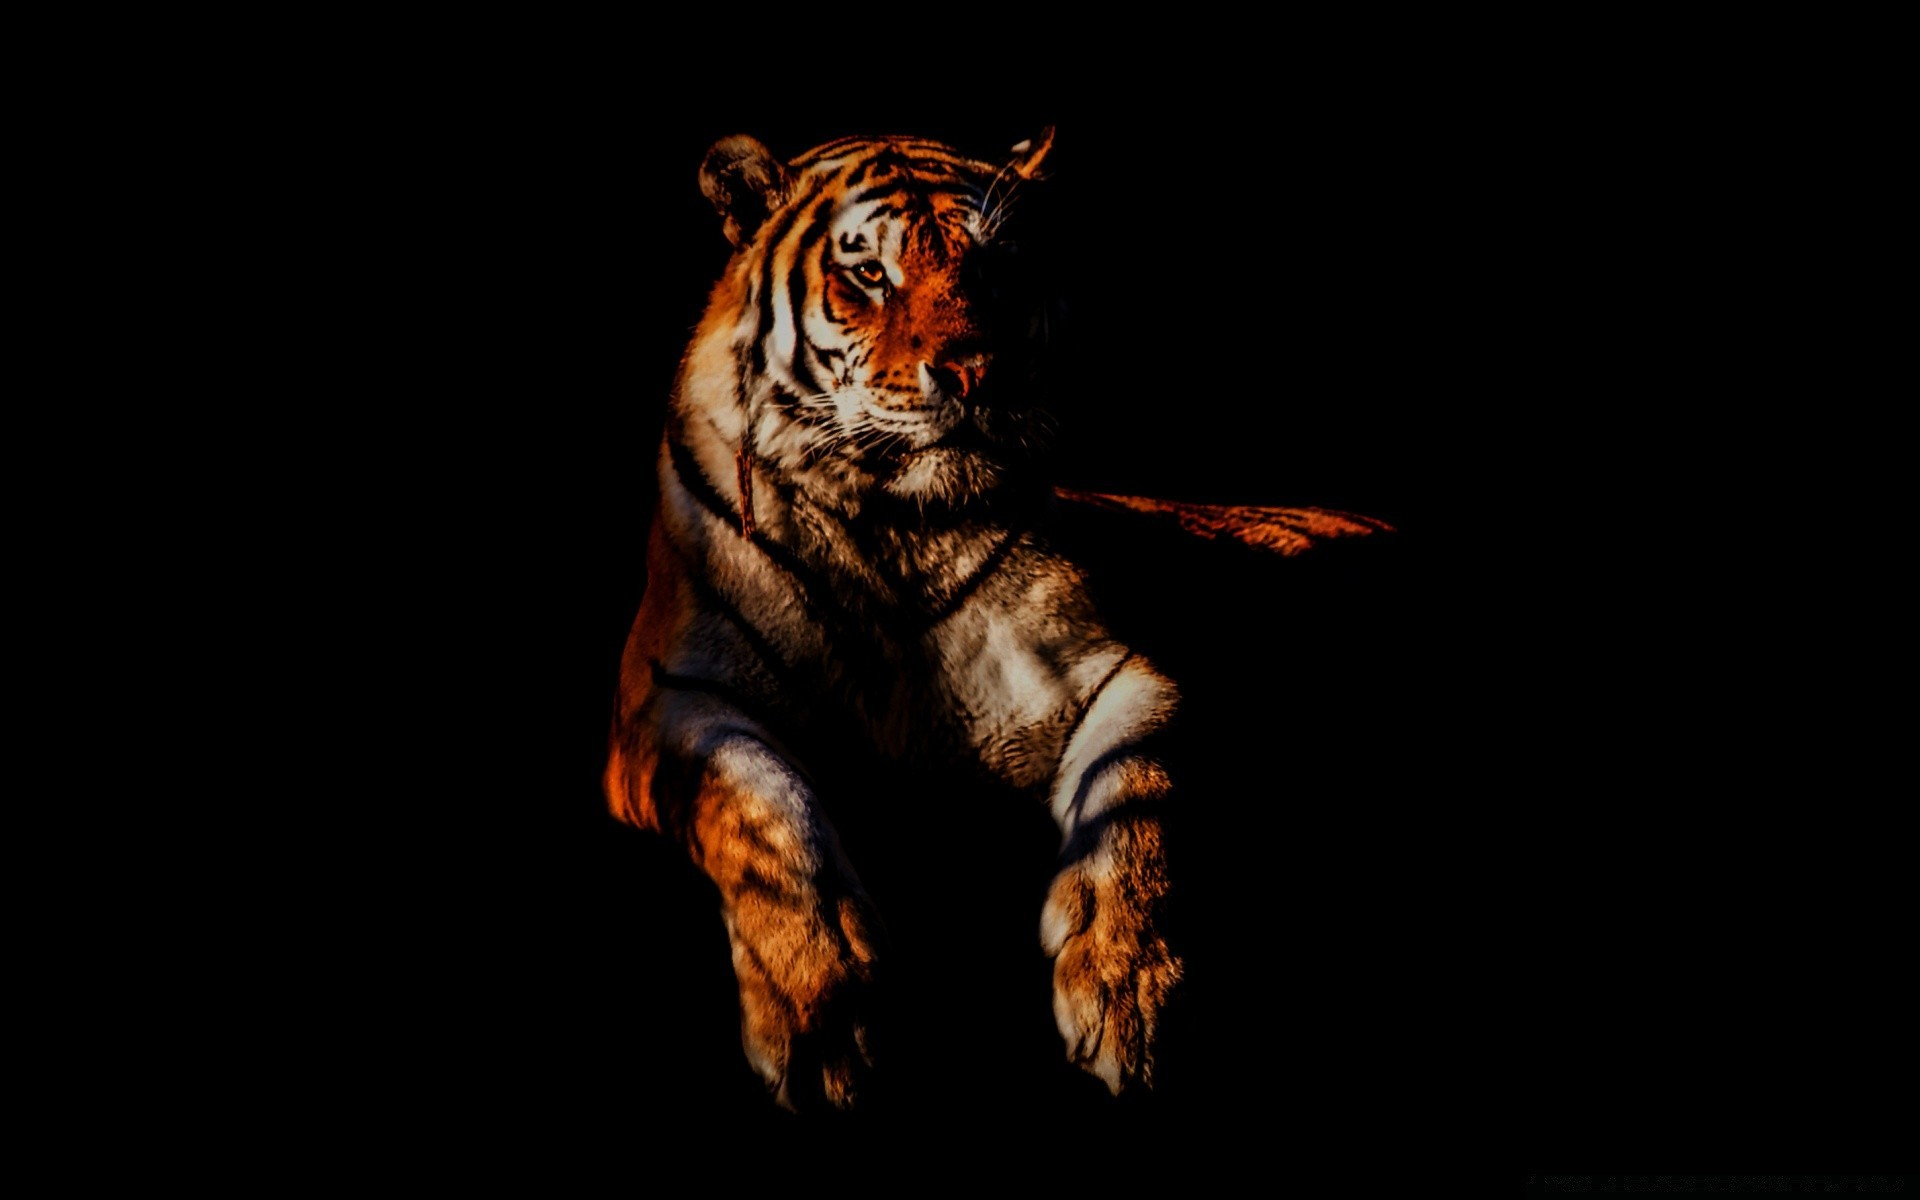 Tiger Phone Wallpapers